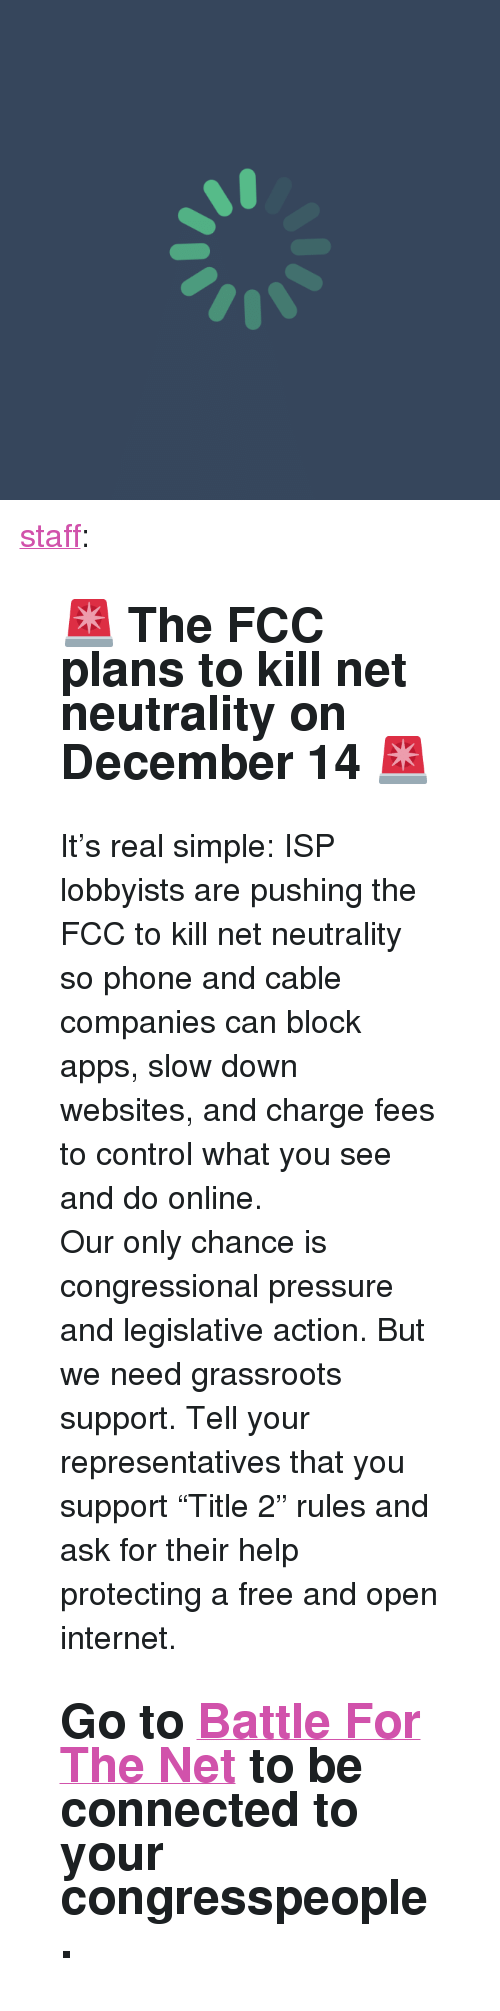 """Internet, Phone, and Pressure: <p><a href=""""https://staff.tumblr.com/post/168469848285/the-fcc-plans-to-kill-net-neutrality-on-december"""" class=""""tumblr_blog"""">staff</a>:</p><blockquote> <h2>🚨 The FCC plans to kill net neutrality on December 14🚨</h2> <p>It's real simple: ISP lobbyists are pushing the FCC to kill net neutrality so phone and cable companies can block apps, slow down websites, and charge fees to control what you see and do online.</p> <p>Our only chance is congressional pressure and legislative action. But we need grassroots support.Tell your representatives that you support """"Title 2"""" rules and ask for their help protecting a free and open internet.</p> <h2>Go to<a href=""""http://t.umblr.com/redirect?z=http%3A%2F%2Fbattleforthenet.com&amp;t=MTA2MzdmN2VlODY5MTBlYWZhMjUyYjk4NTQxYjQyZmQ0ZjkxYmMwOCxuNDhIY1hJTw%3D%3D&amp;b=t%3A0aY0xL2Fi1OFJg4YxpmegQ&amp;p=https%3A%2F%2Fstaff.tumblr.com%2Fpost%2F168439074050%2Fthe-fcc-plans-to-kill-net-neutrality-on-december&amp;m=0"""">Battle For The Net</a>to be connected to your congresspeople.</h2> </blockquote>"""